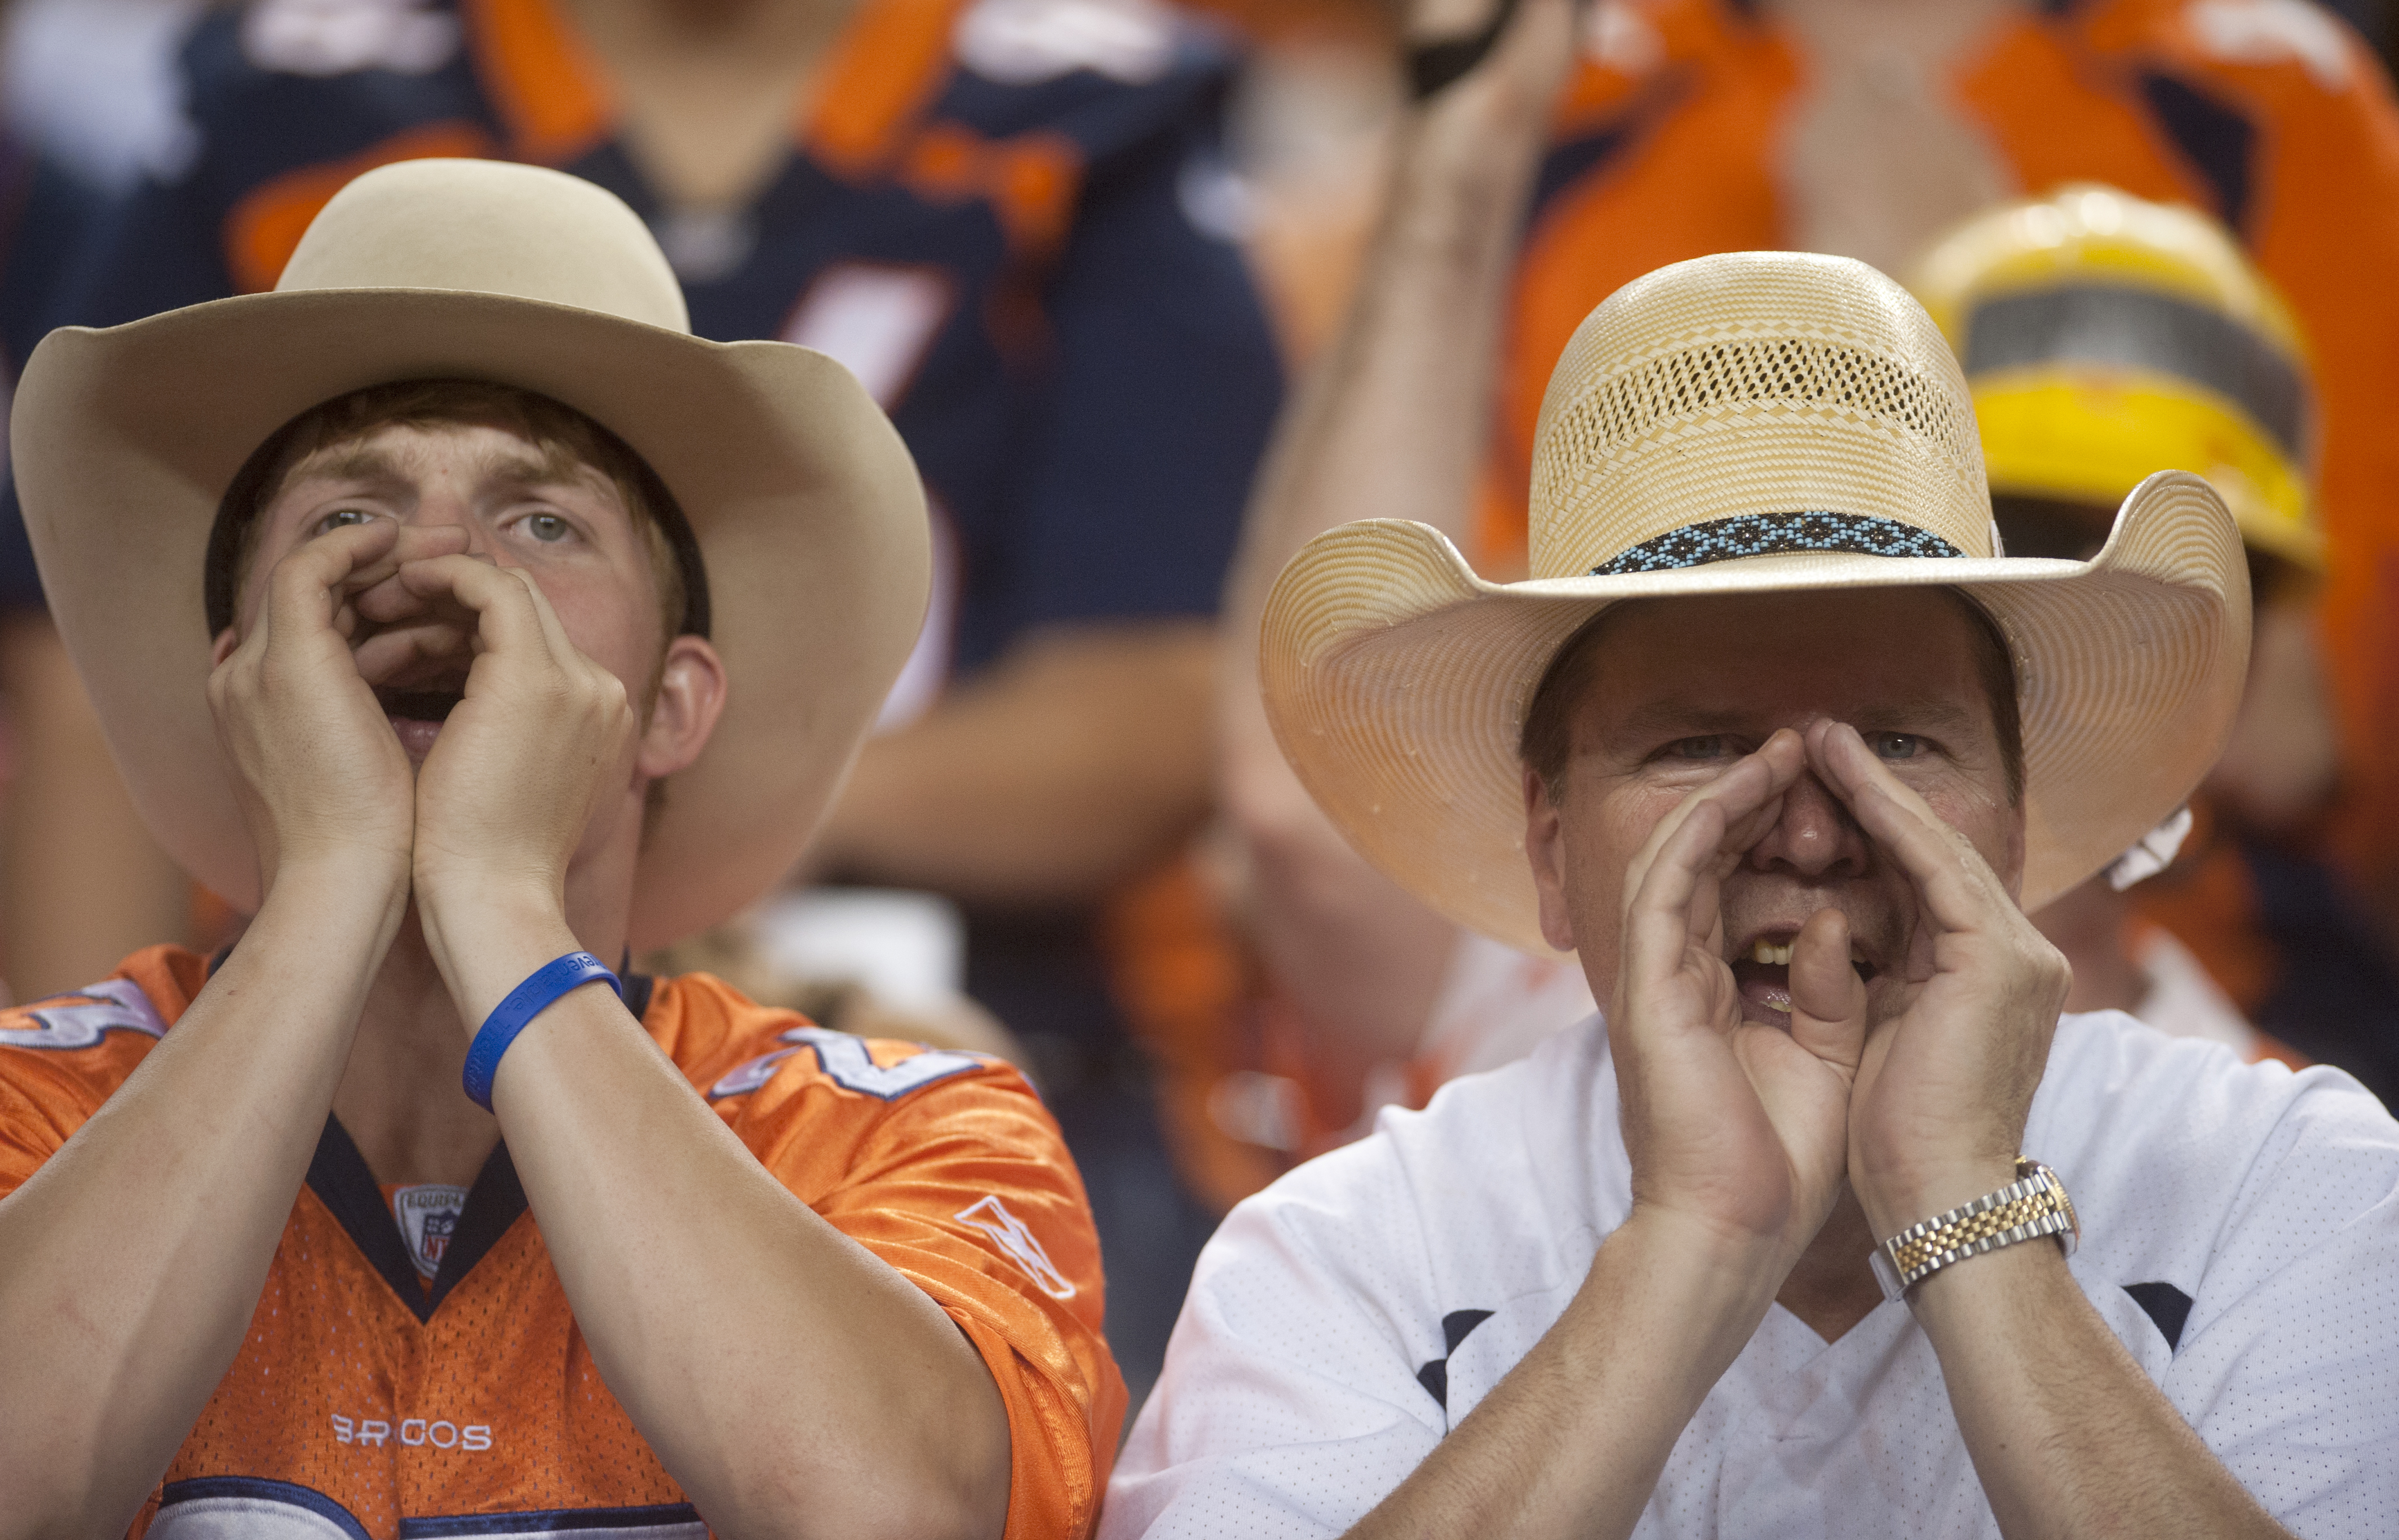 Fans at Sports Authority Field at Mile High on Sept. 5, 2012. (credit: Evan Semón, For CBS4)